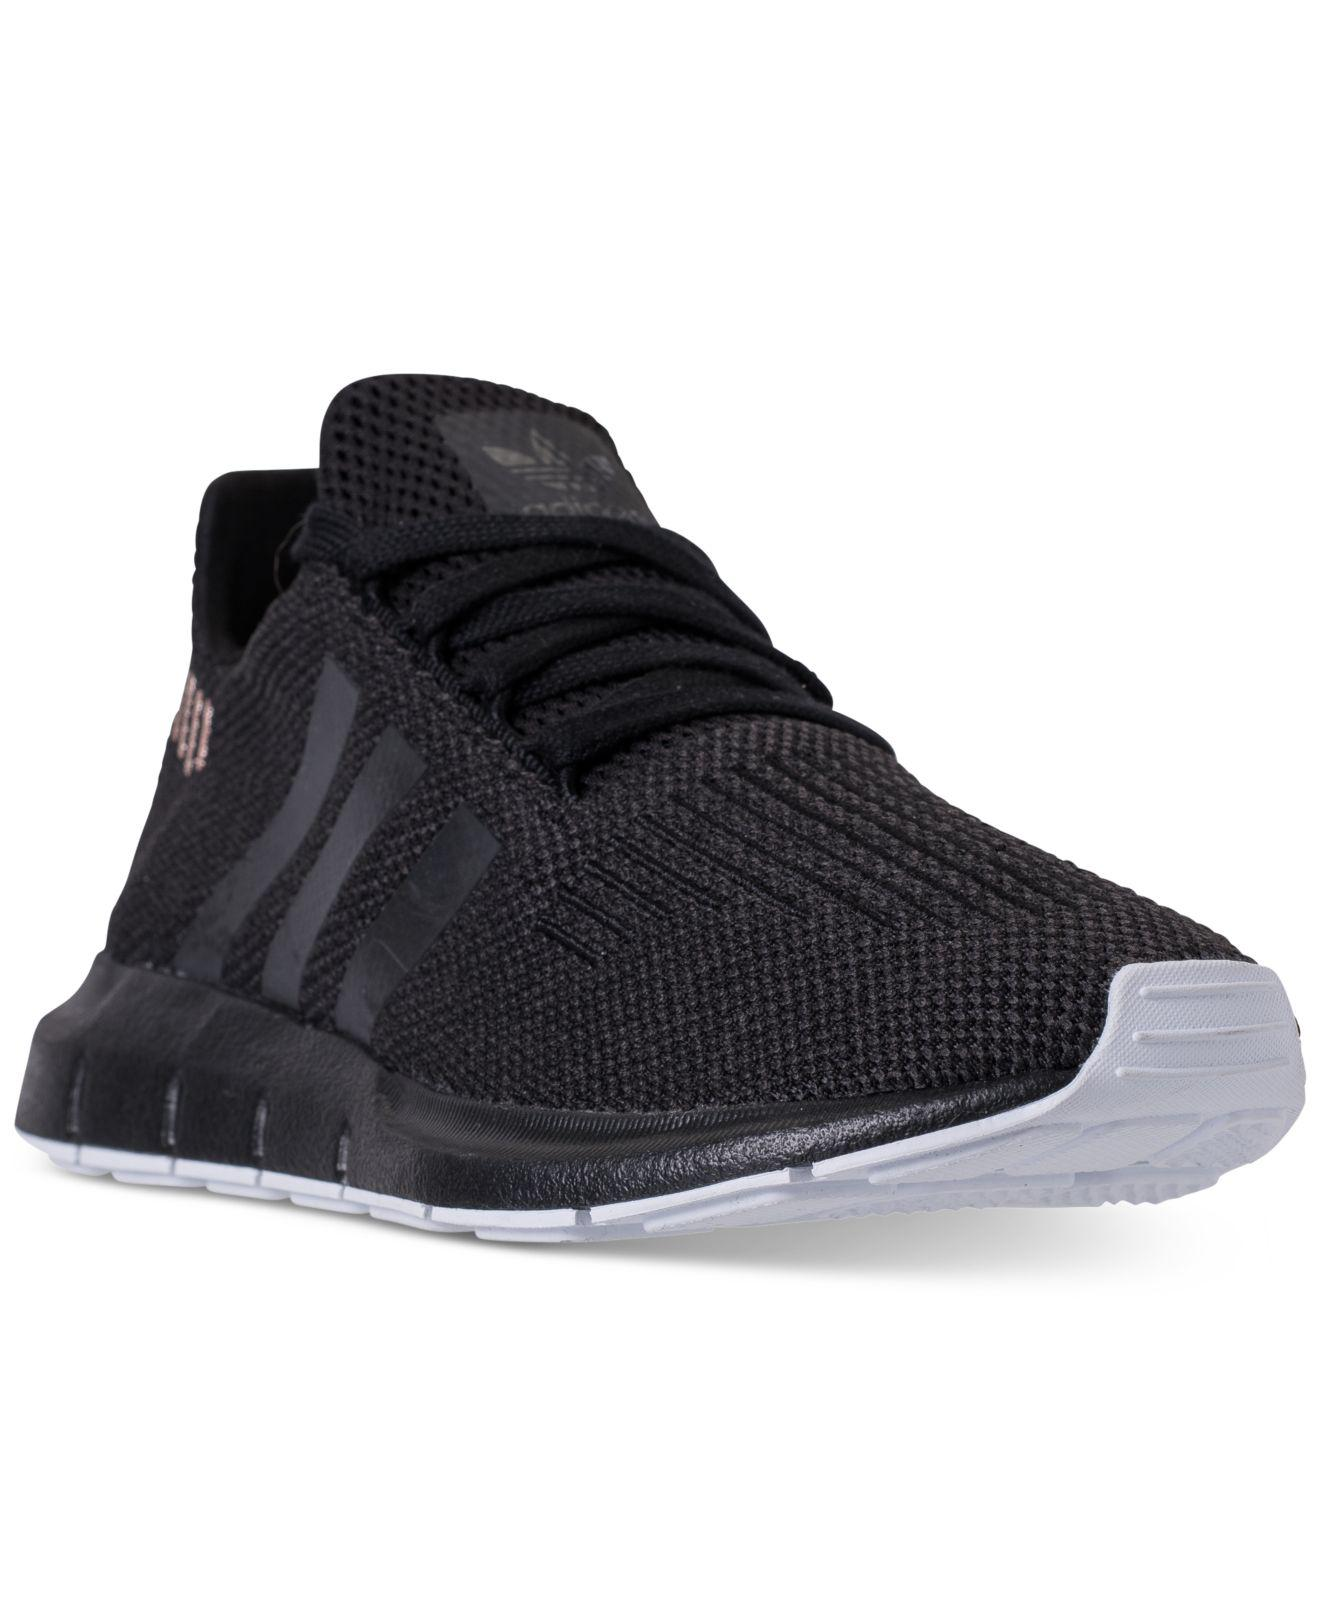 Lyst - Adidas Swift Run Casual Sneakers From Finish Line in Black 582d34ed2